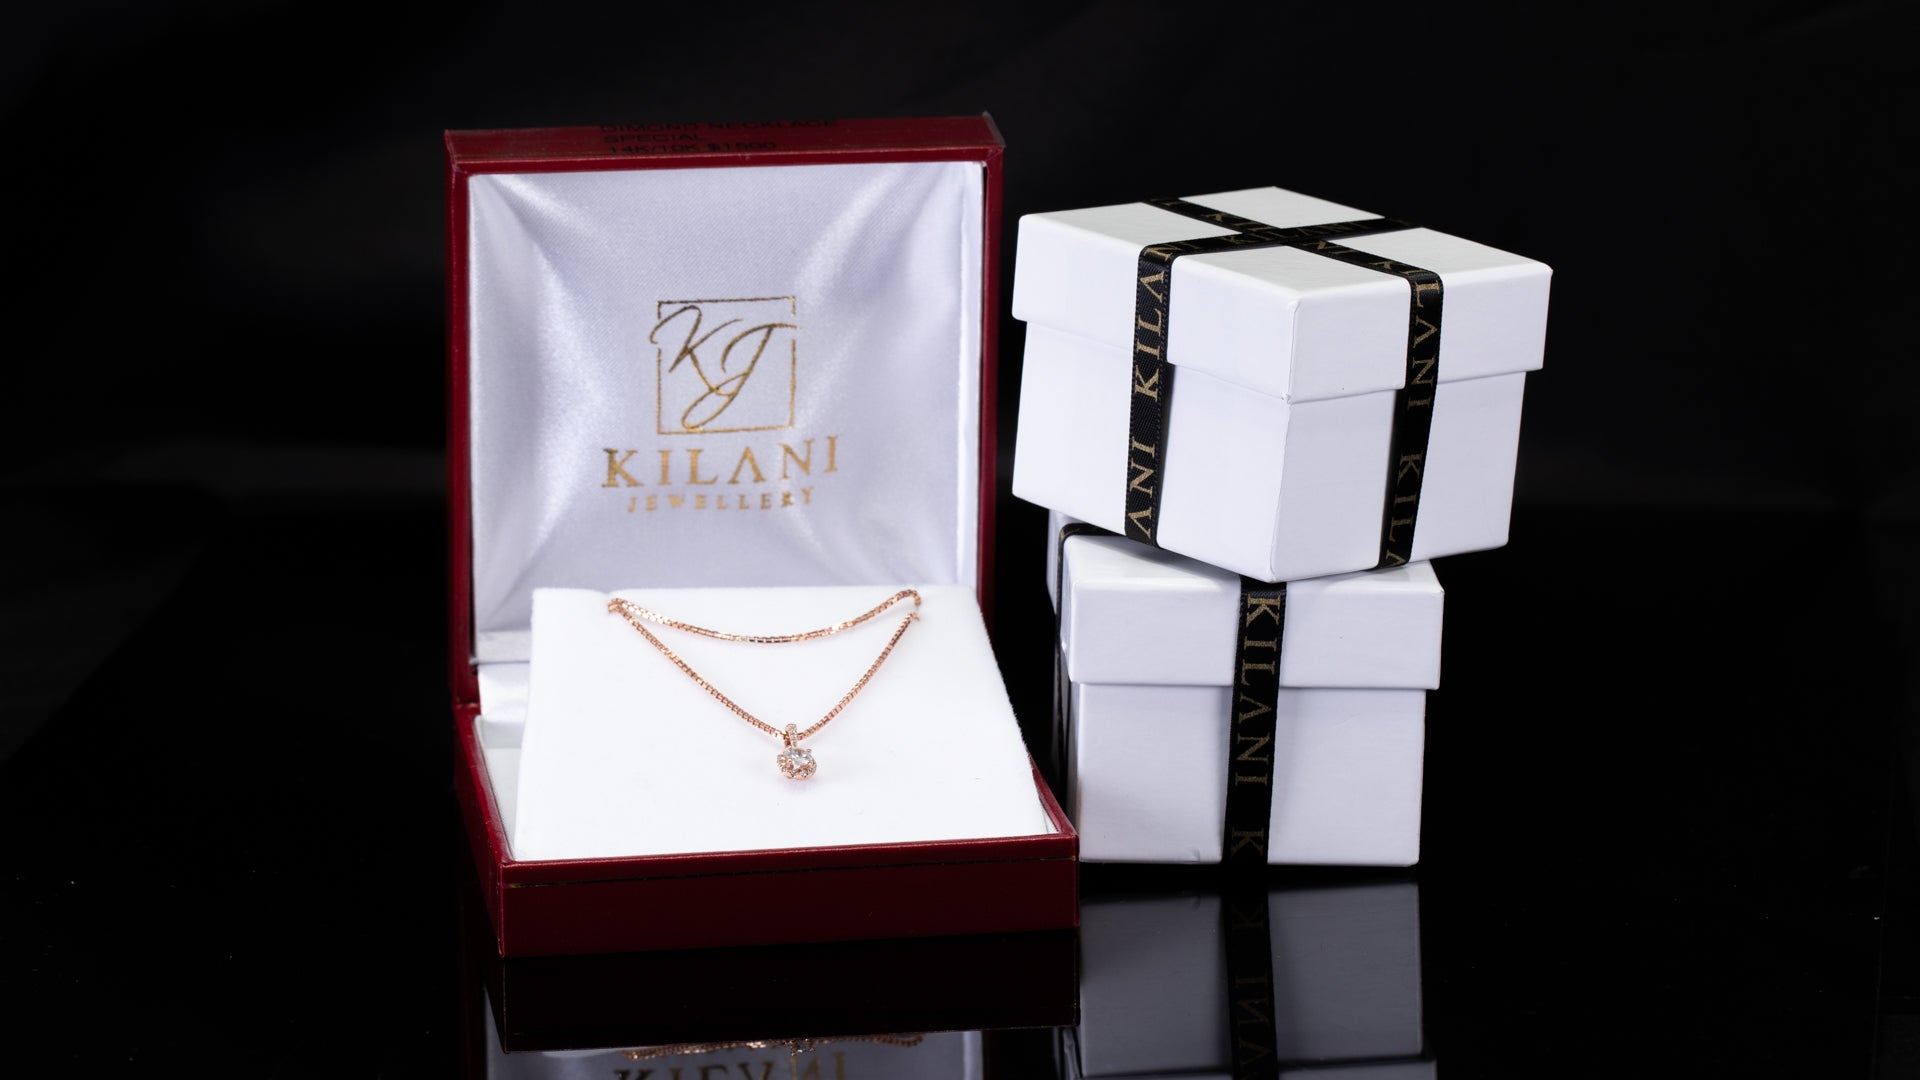 [SPECIAL] 10k/14k Rose Gold Solitaire Diamond Necklace